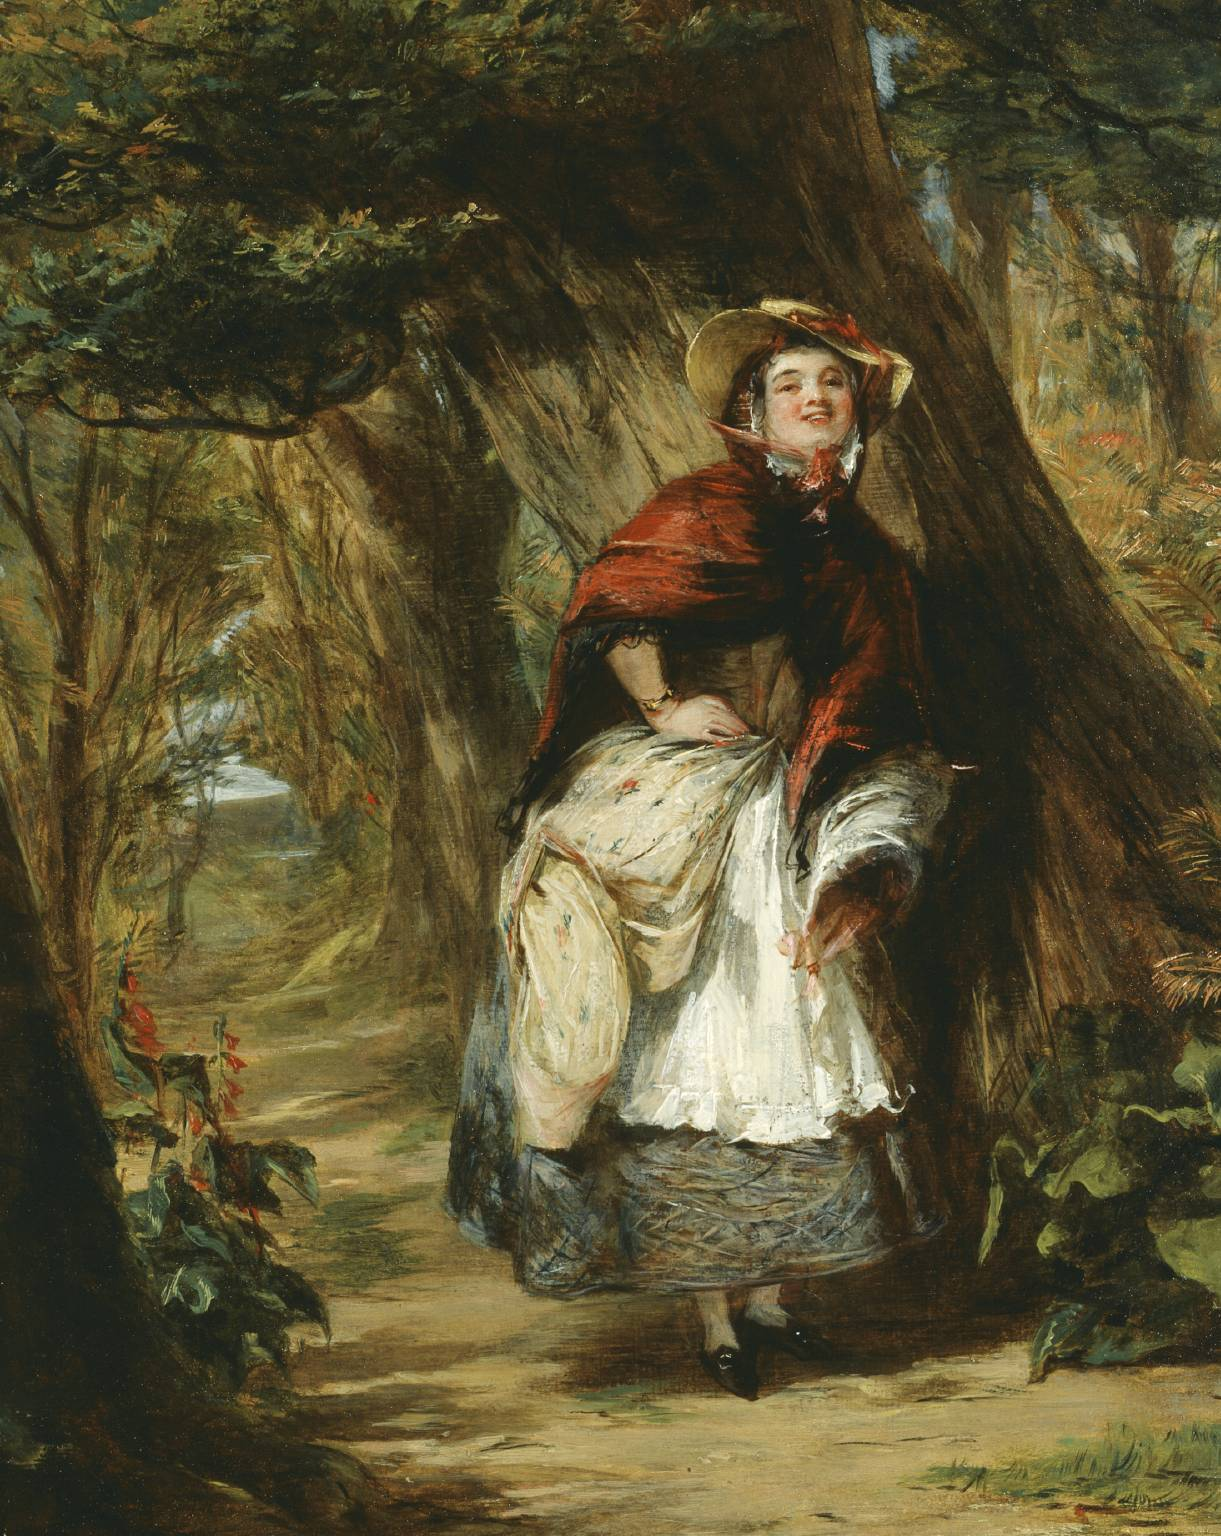 an analysis of the character of charles in the forest of arden Characters of as you like it :- william shakespeare characters:-:.